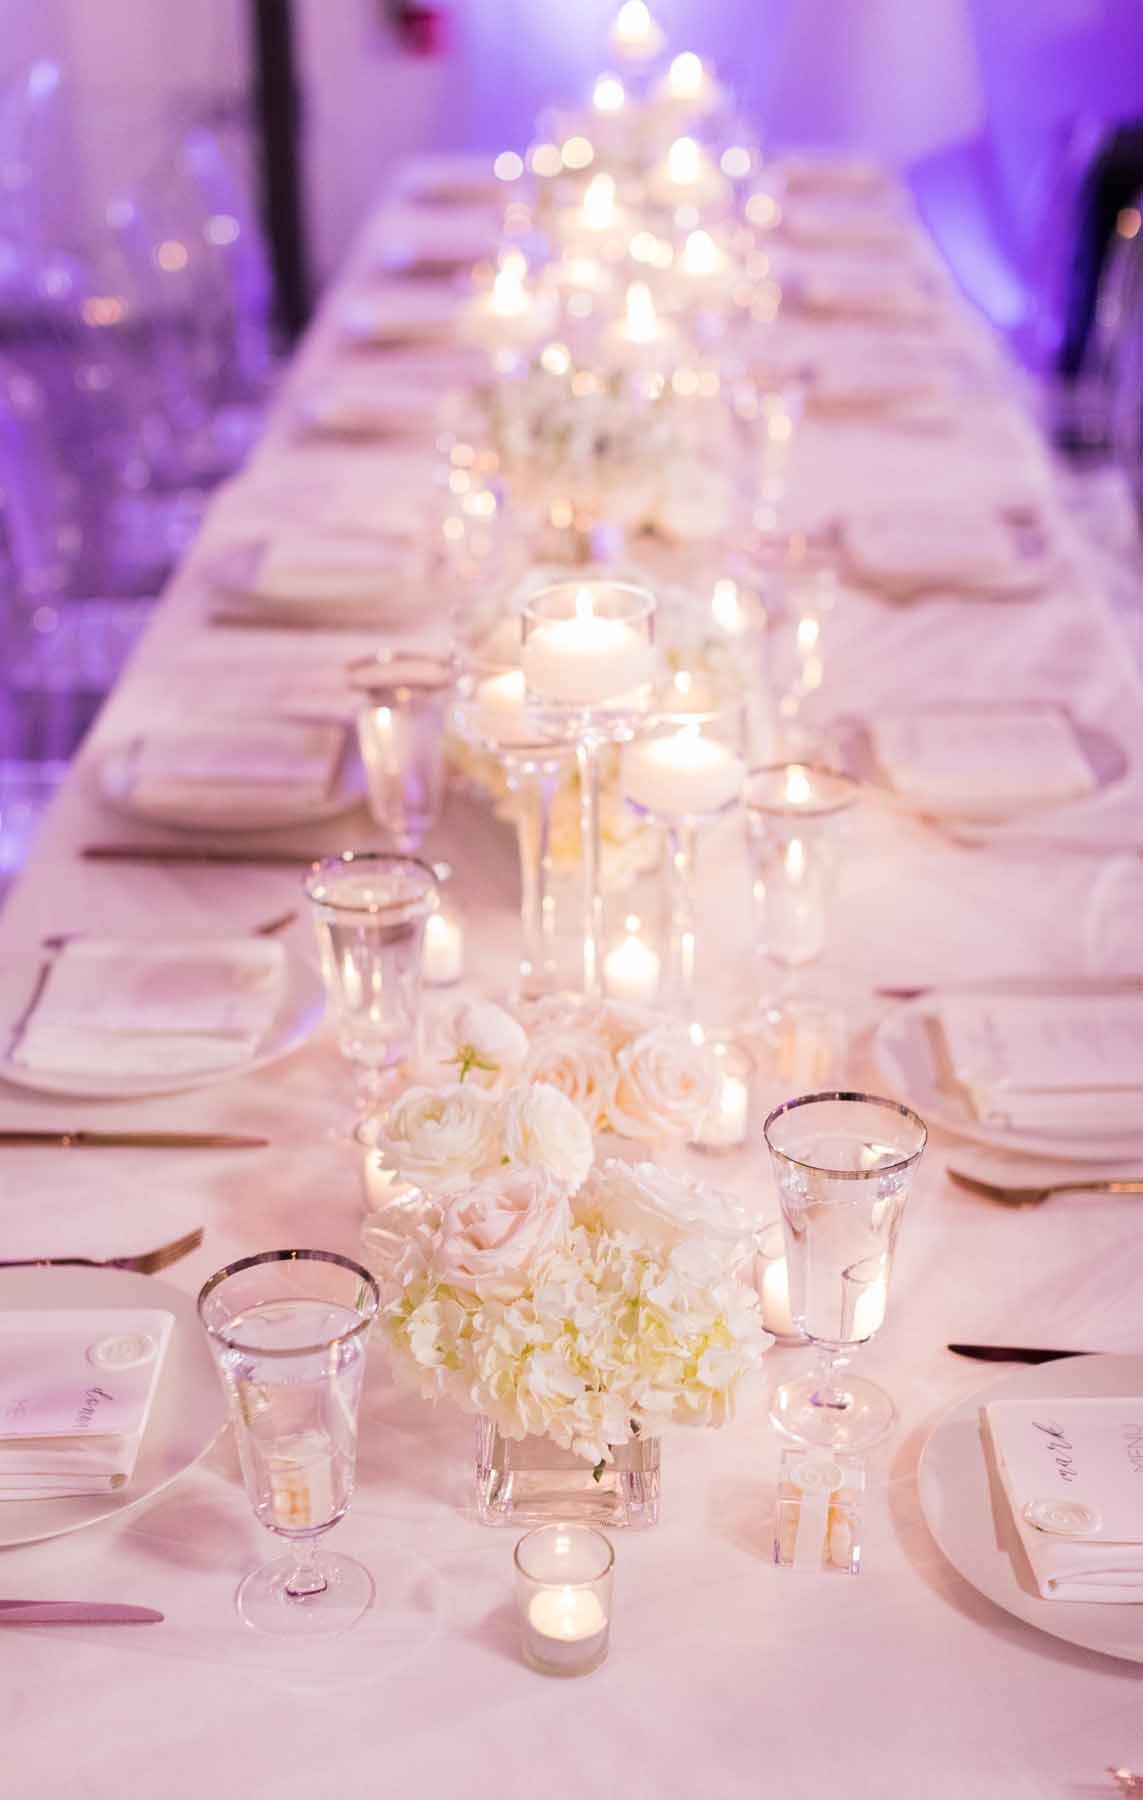 Long wedding reception table lined with white flowers and candles